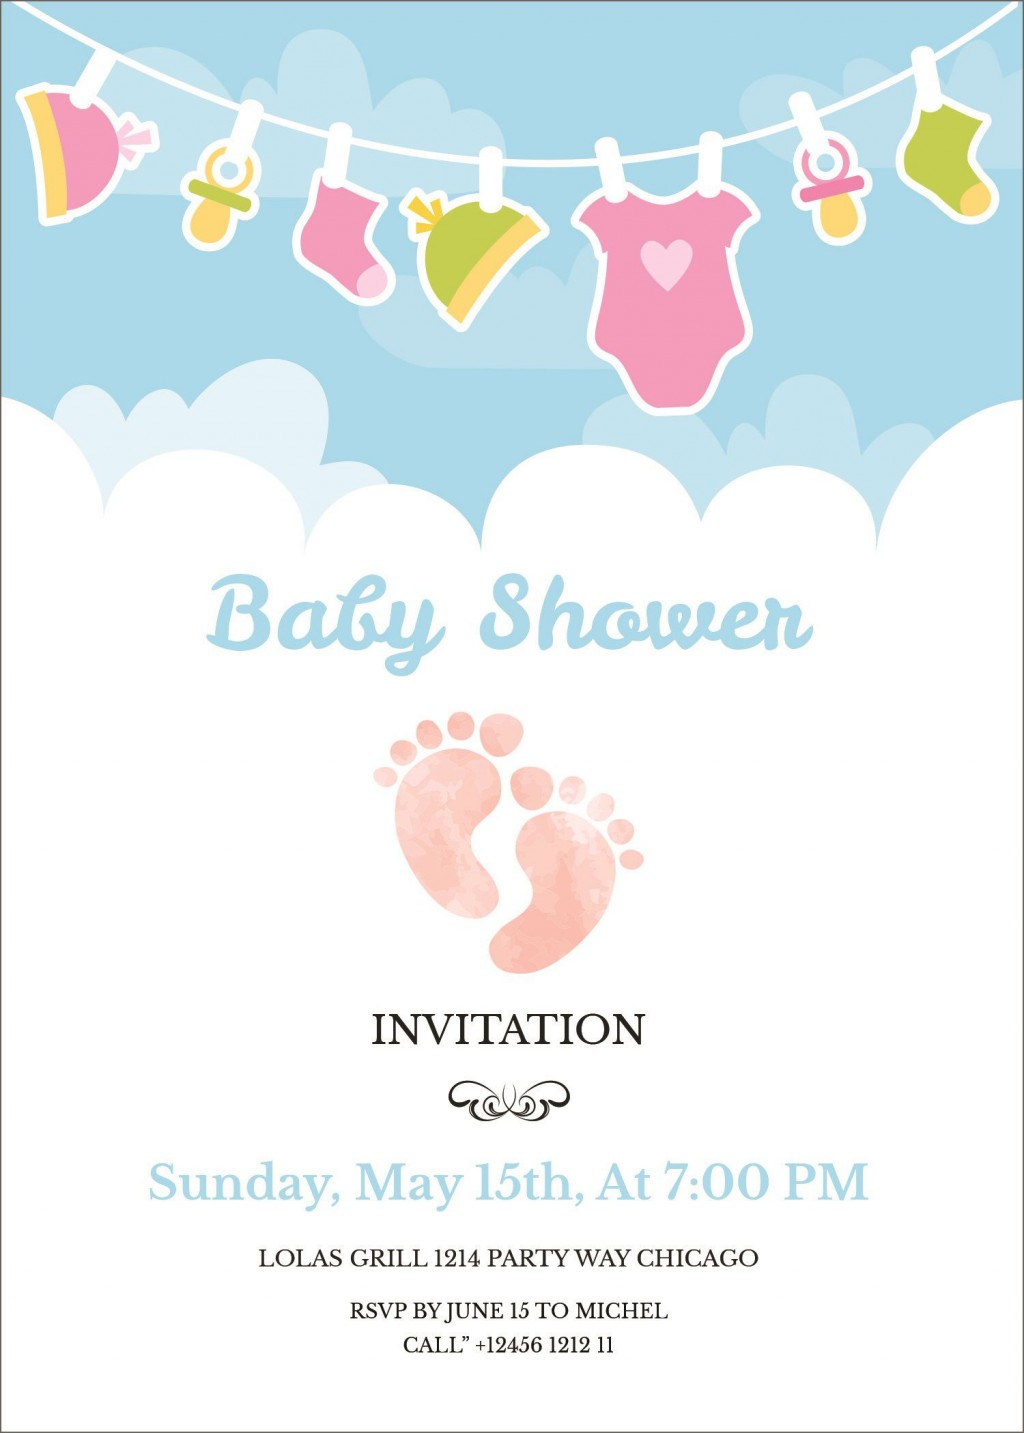 003 Stunning Baby Shower Card Template Psd Highest Clarity Large